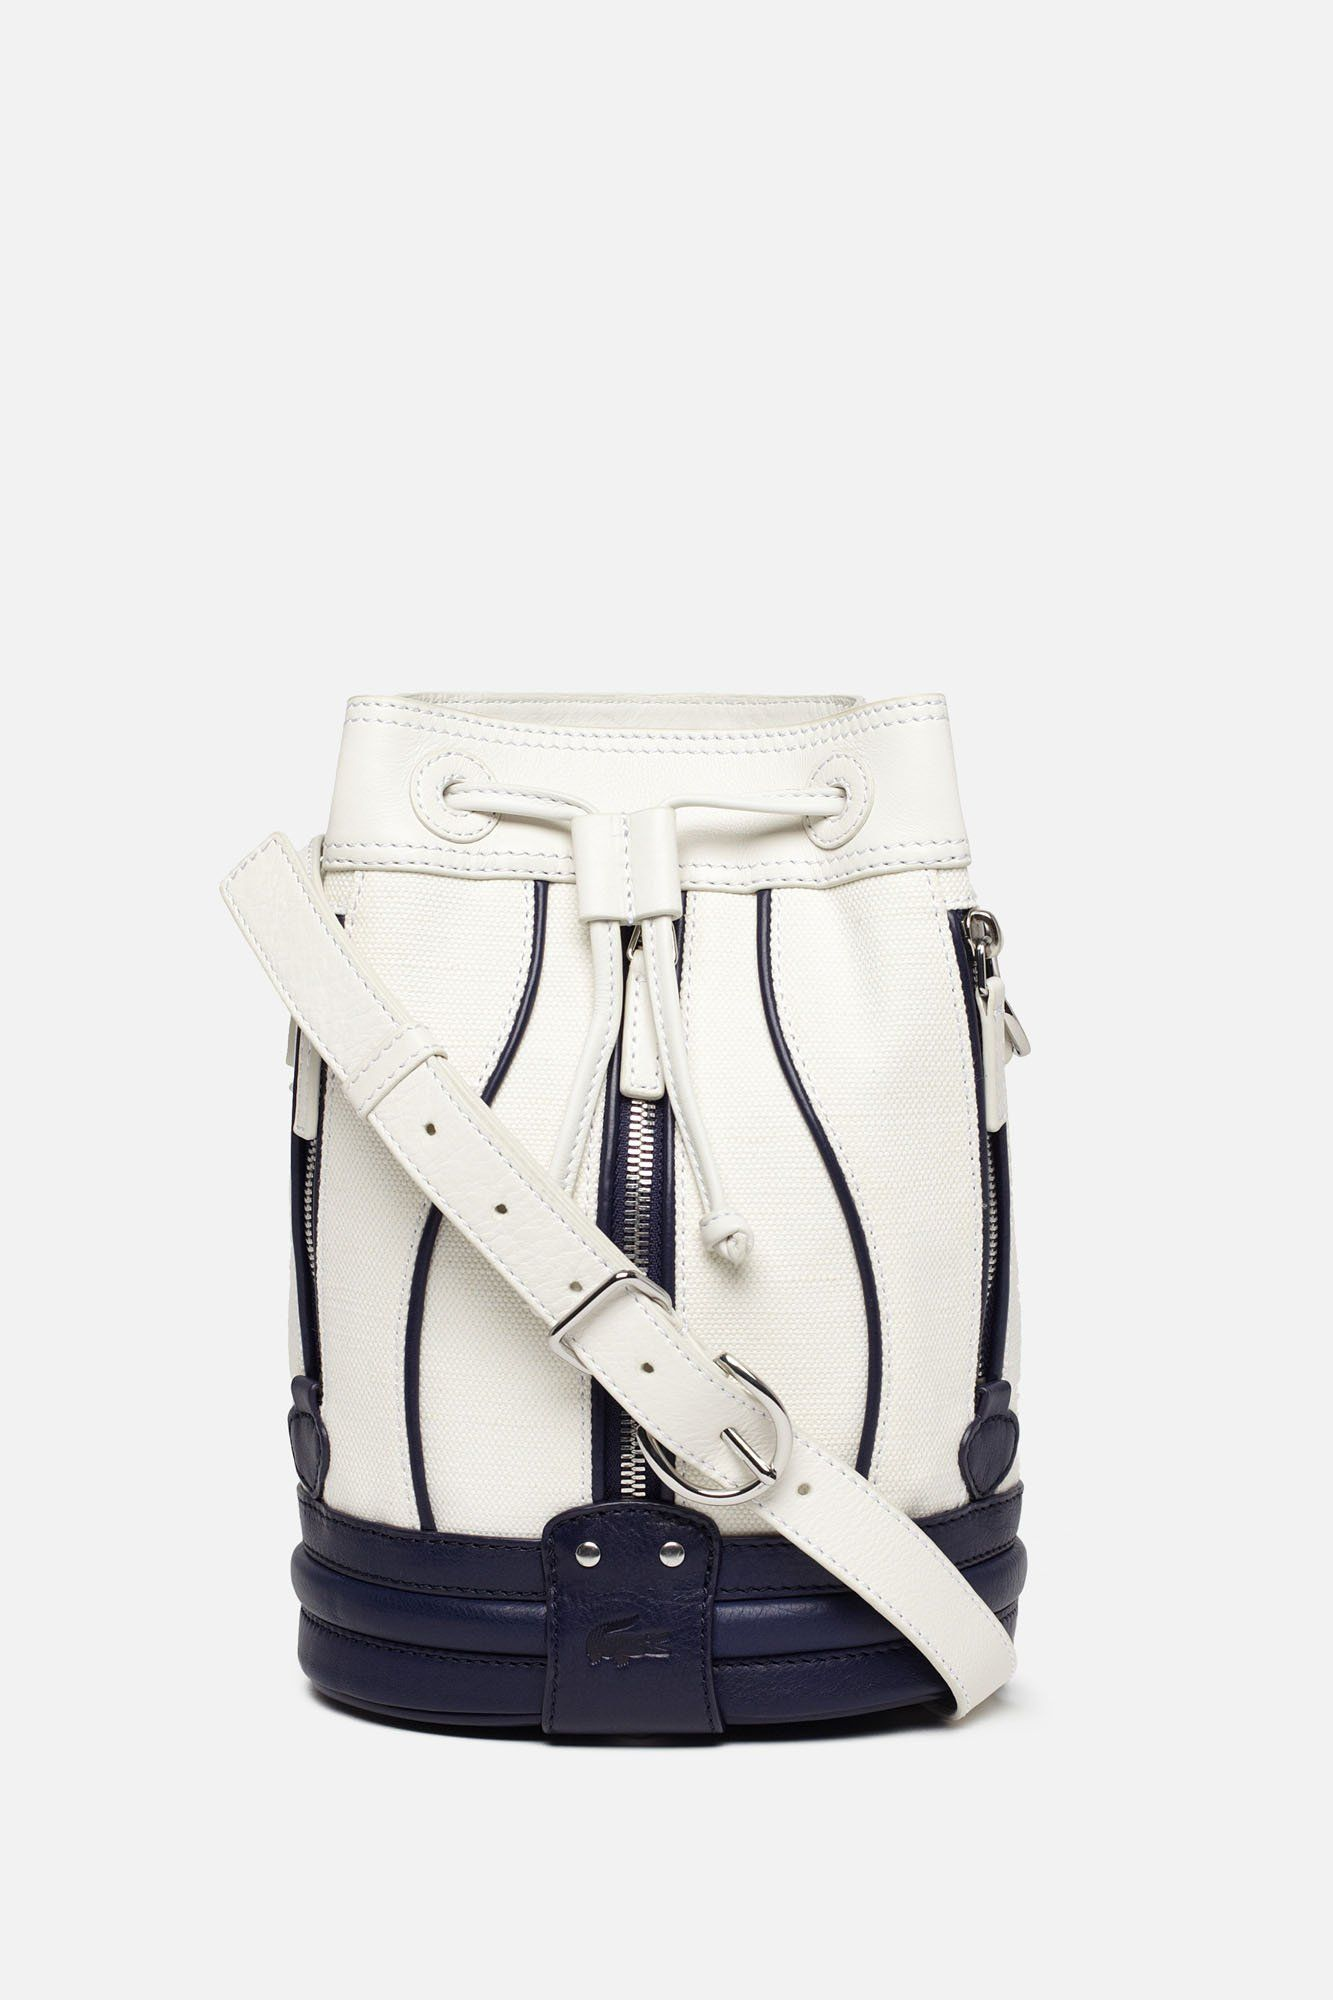 ef433aca67 Lacoste Cathy Toile Small Bucket Bag : Bags & Wallets | the wish ...